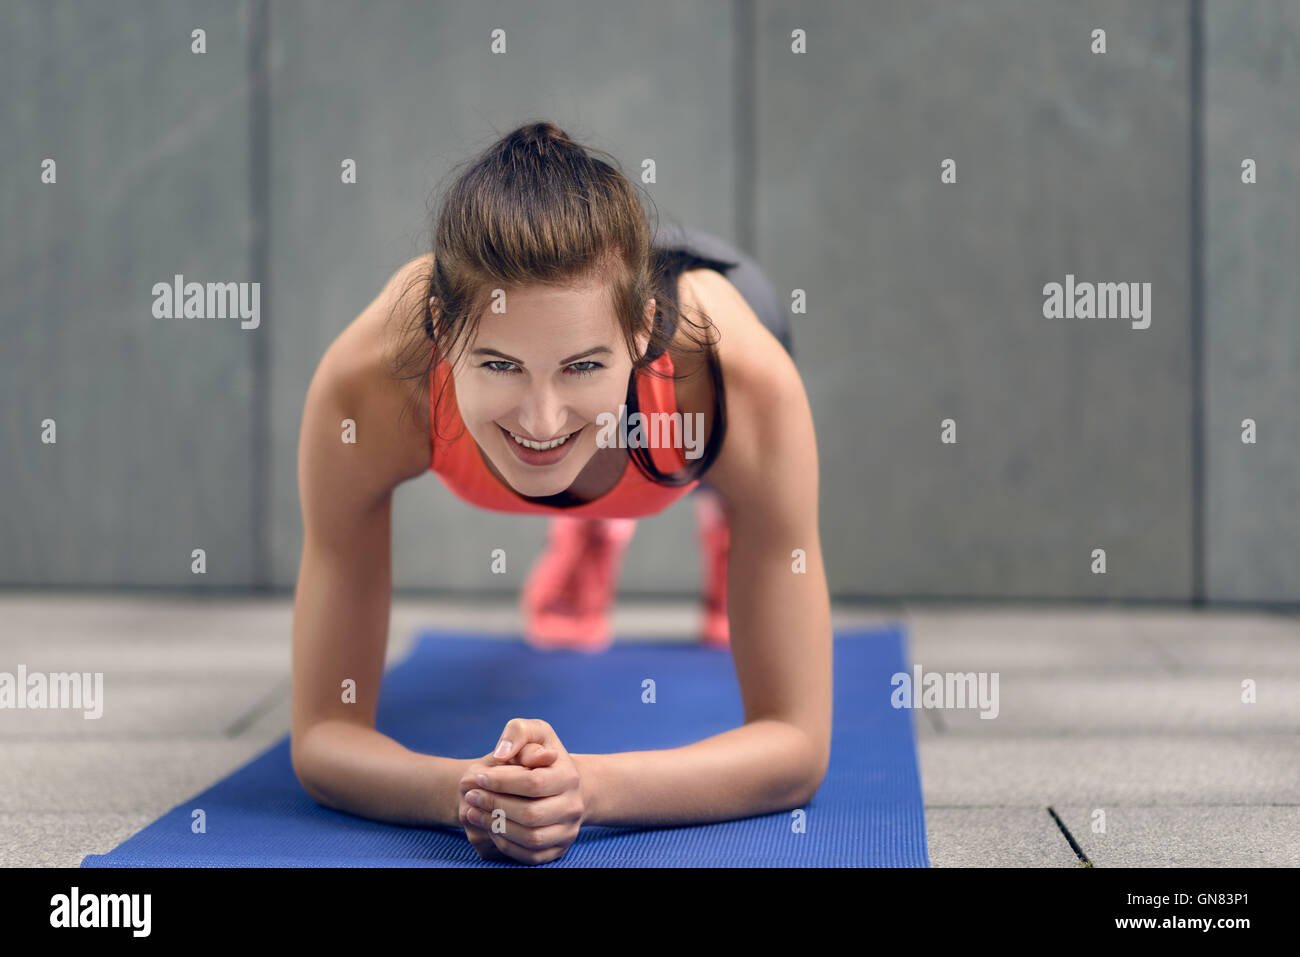 Fit young woman doing planks, strengthening her core, working out on a mat, lifestyle and health concept - Stock Image